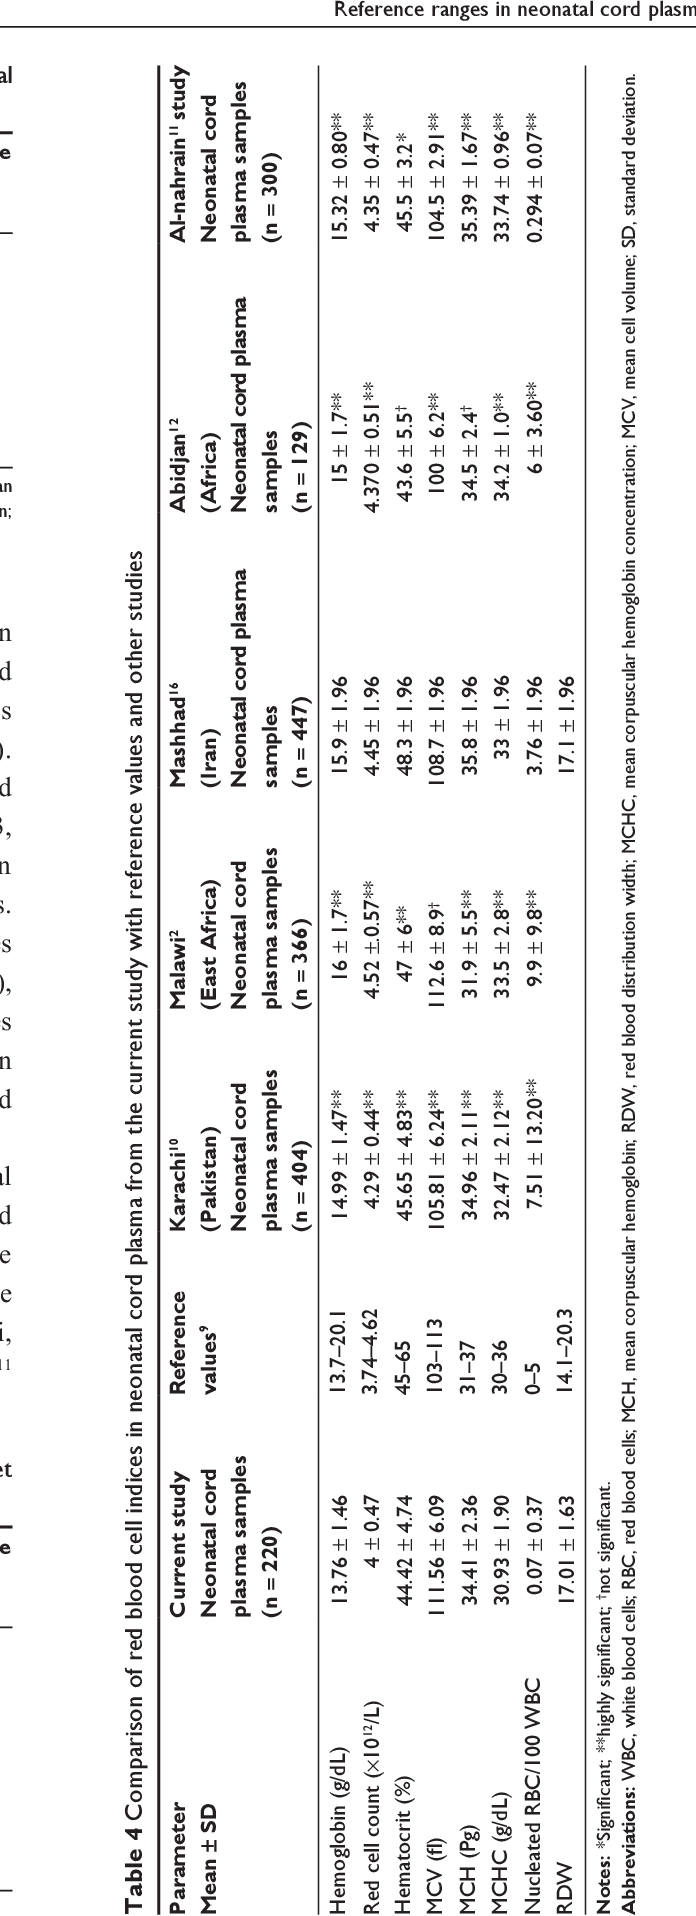 Table 1 from Determination of reference ranges for full